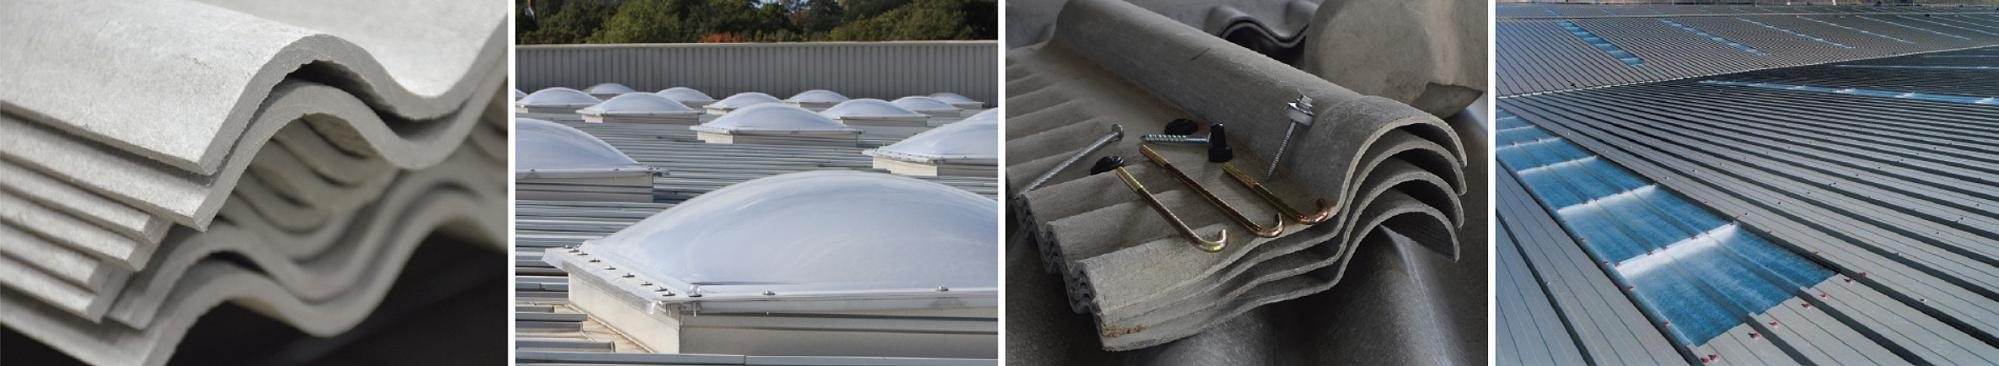 Roof Sheets Montage